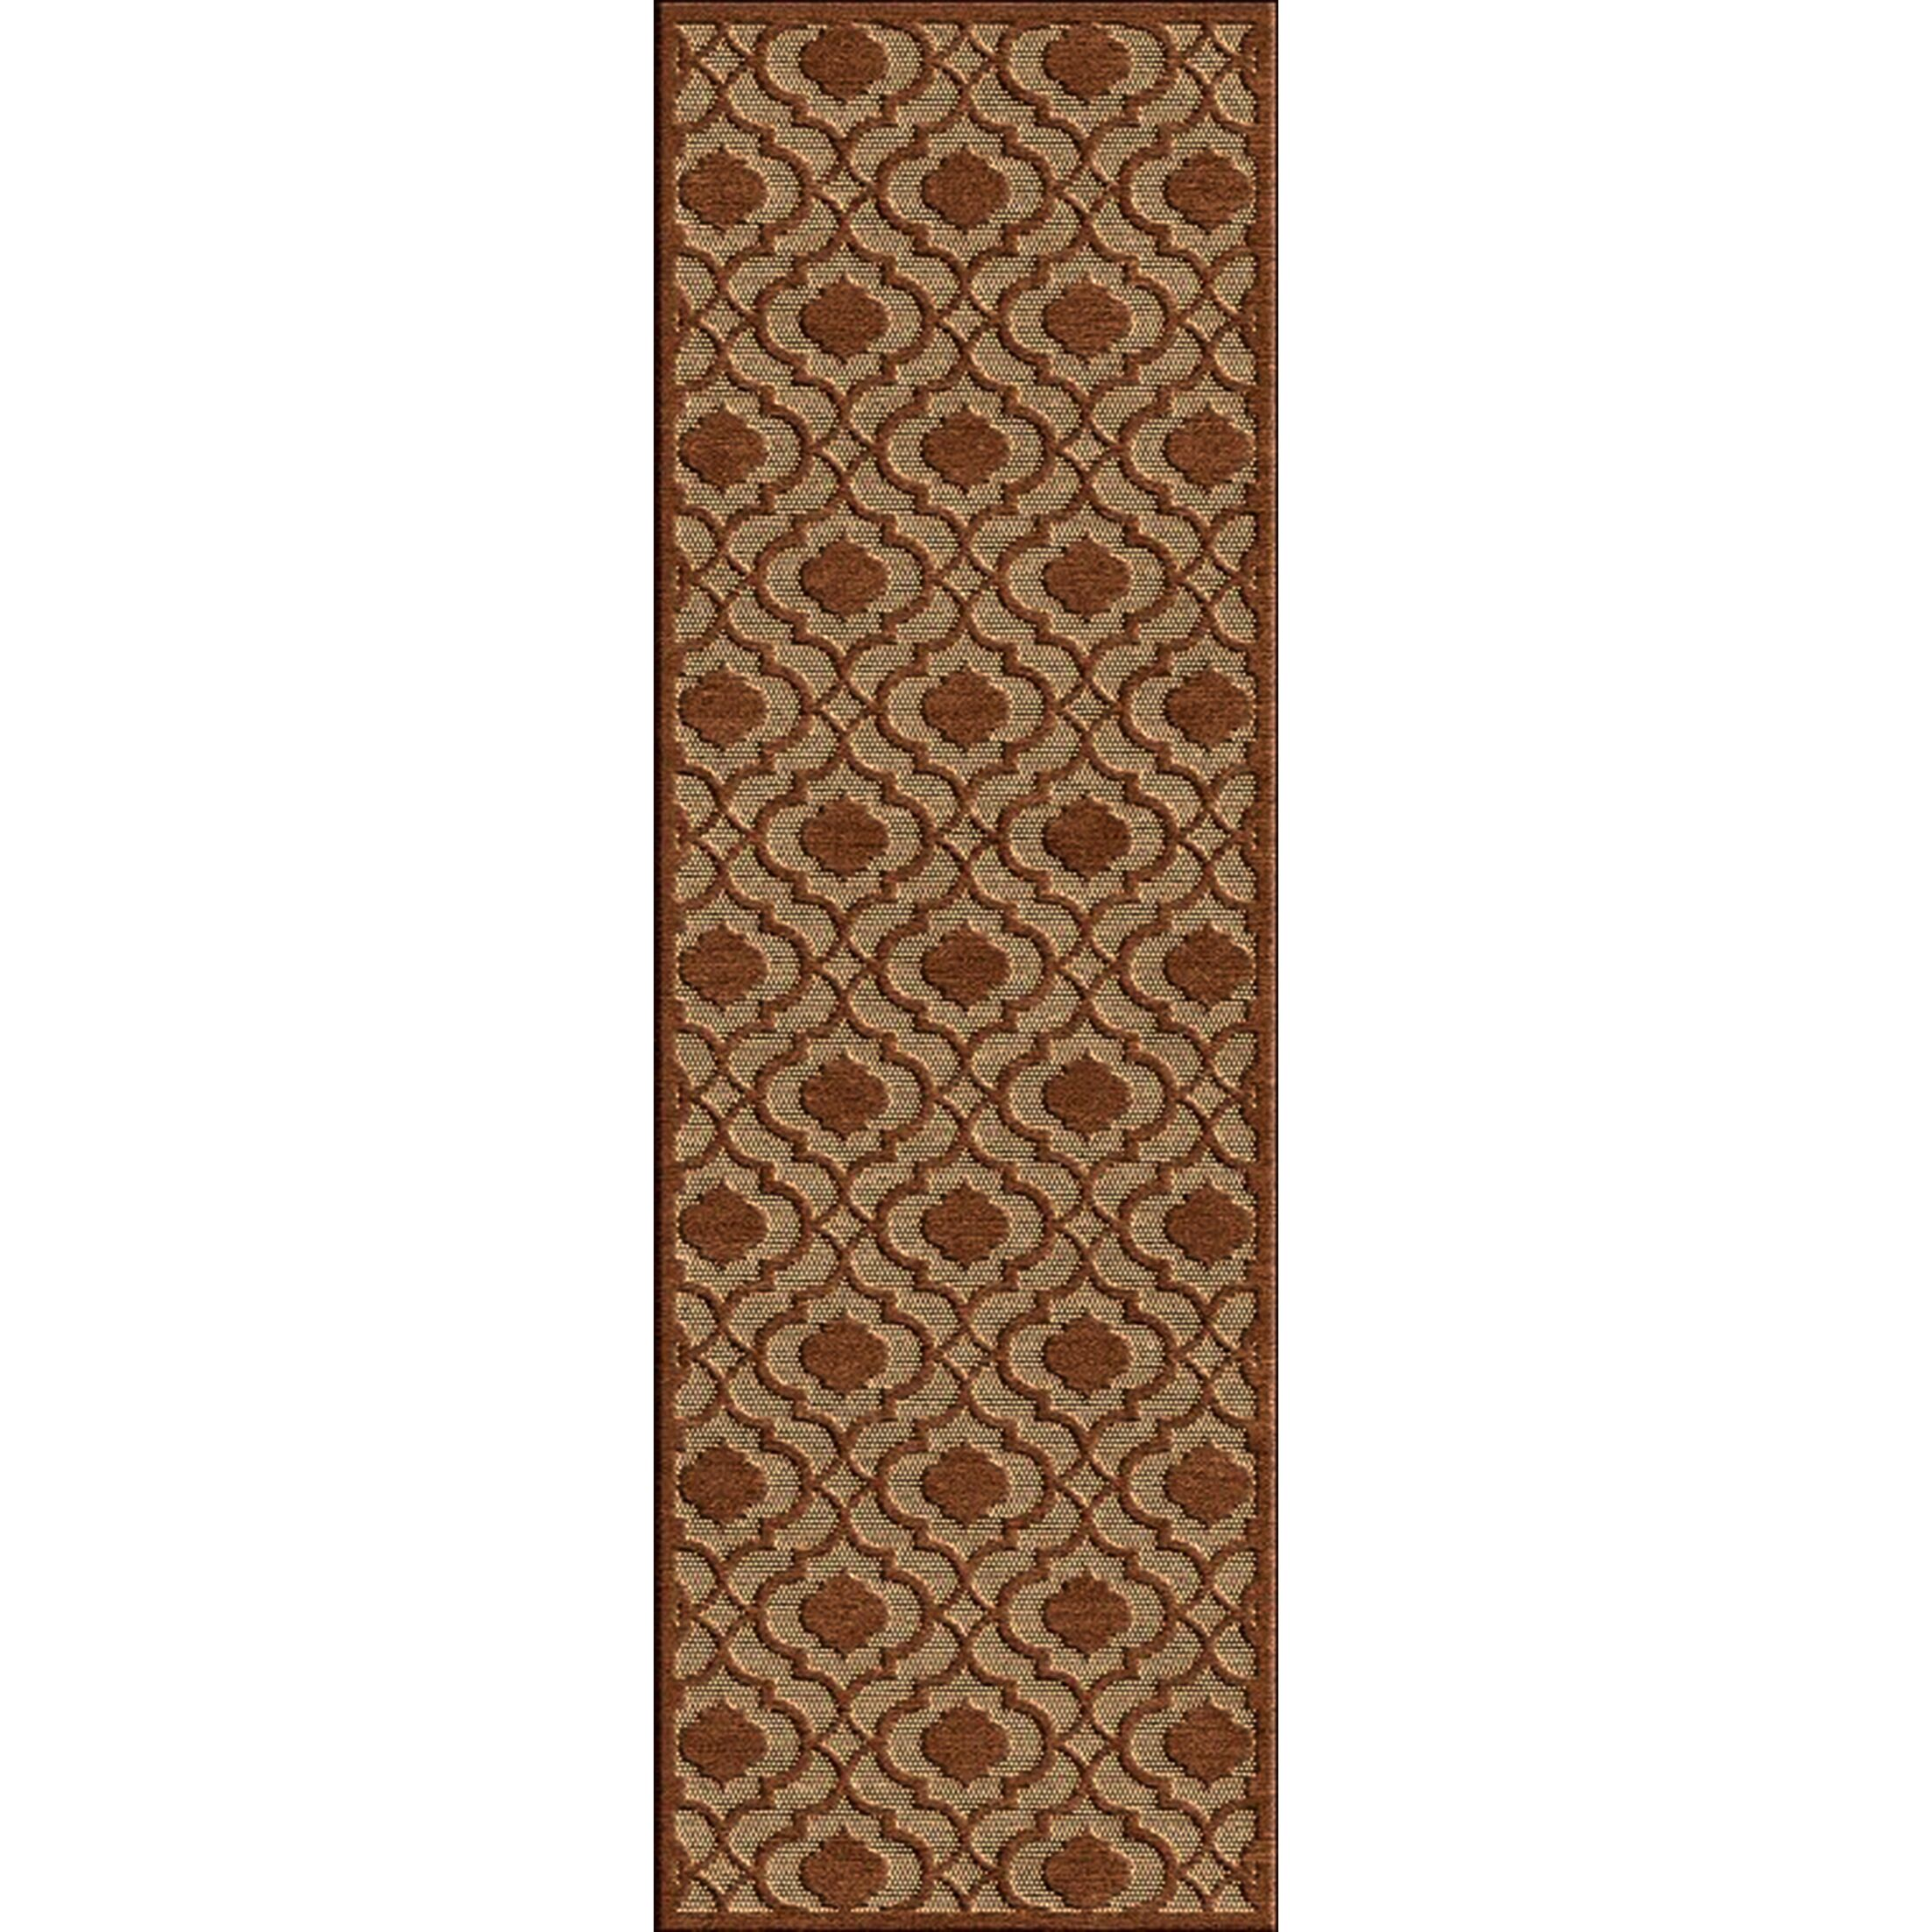 Countryman Rust/Tan Indoor/Outdoor Area Rug Rug Size: Rectangle 5' x 7'6